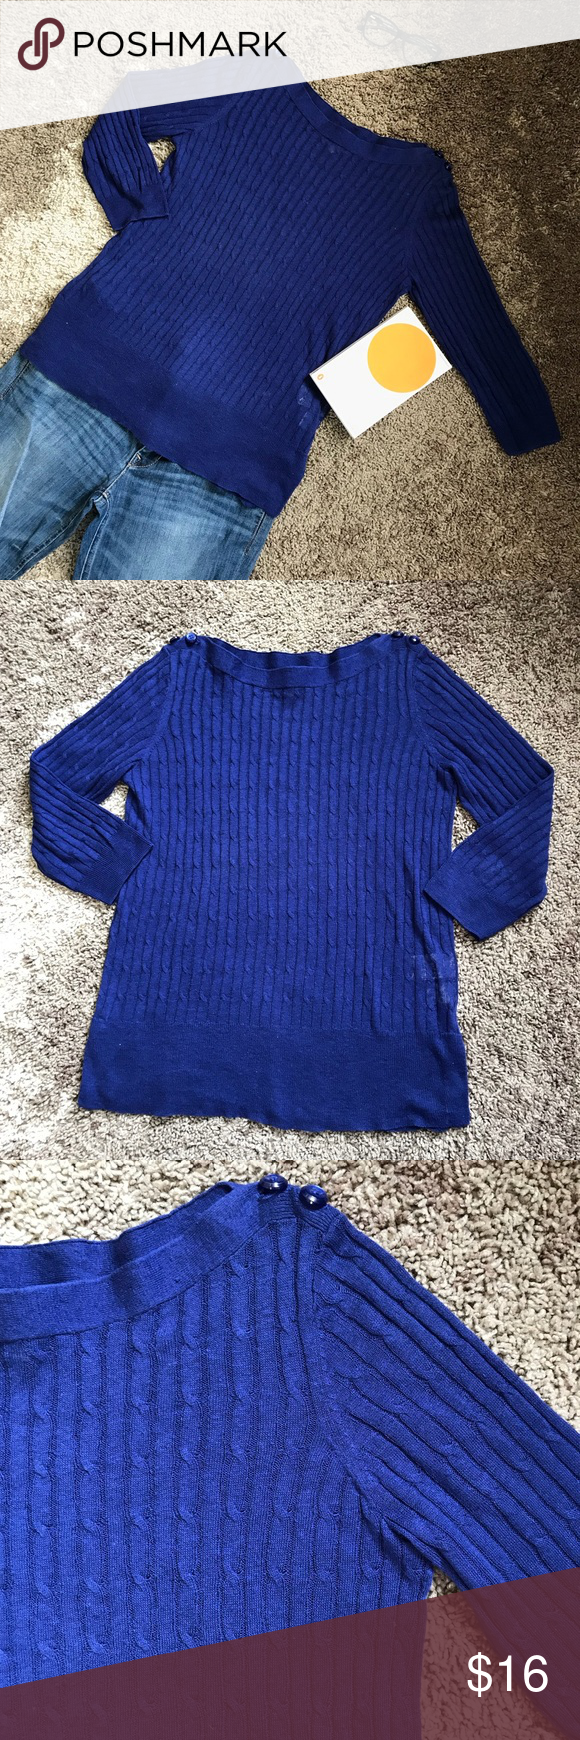 Royal Blue Cable Knit Sweater from Jones New York